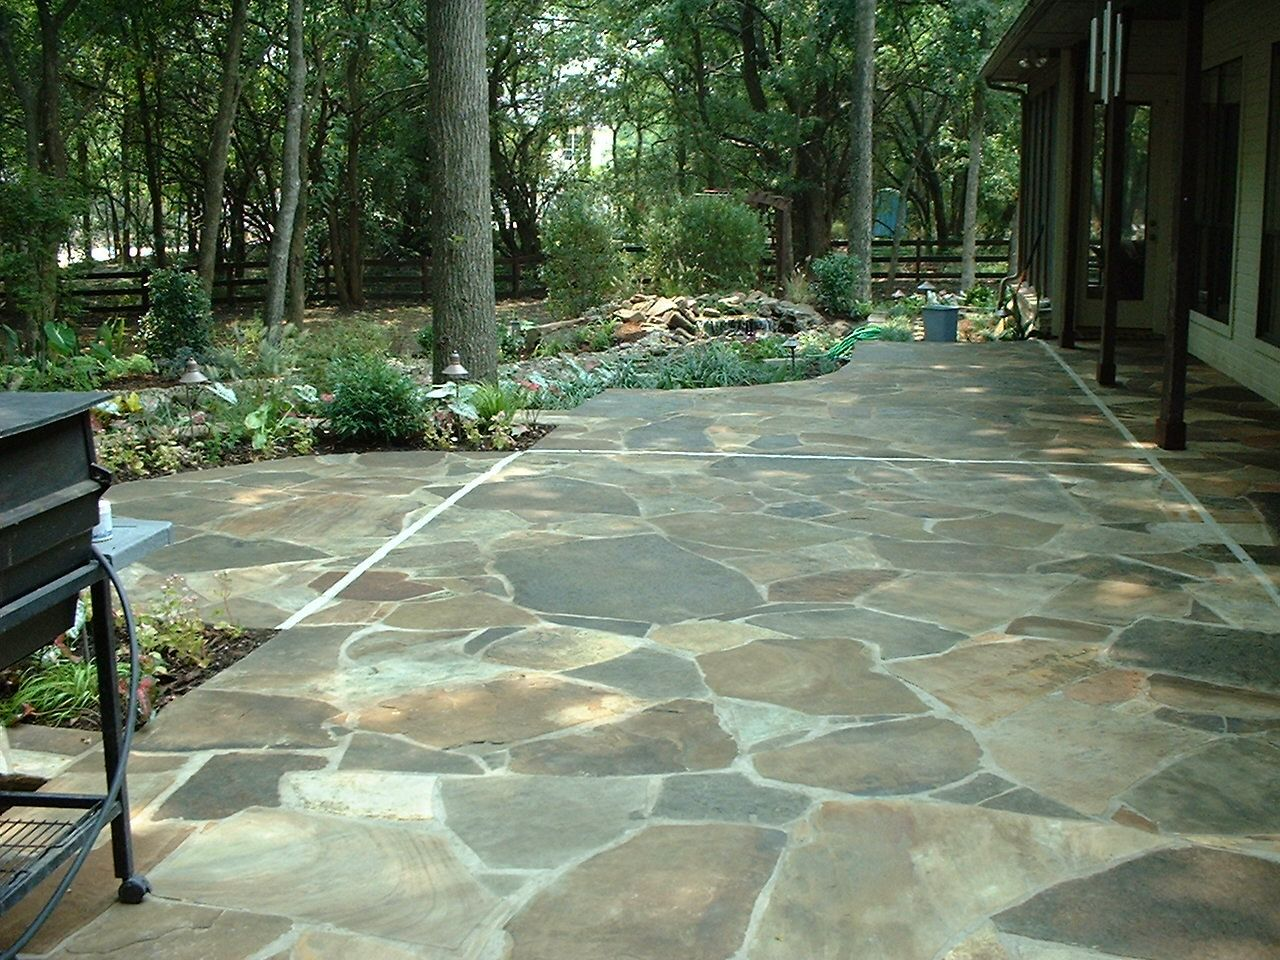 Merveilleux Flagstone Patio DIY For Next To The House